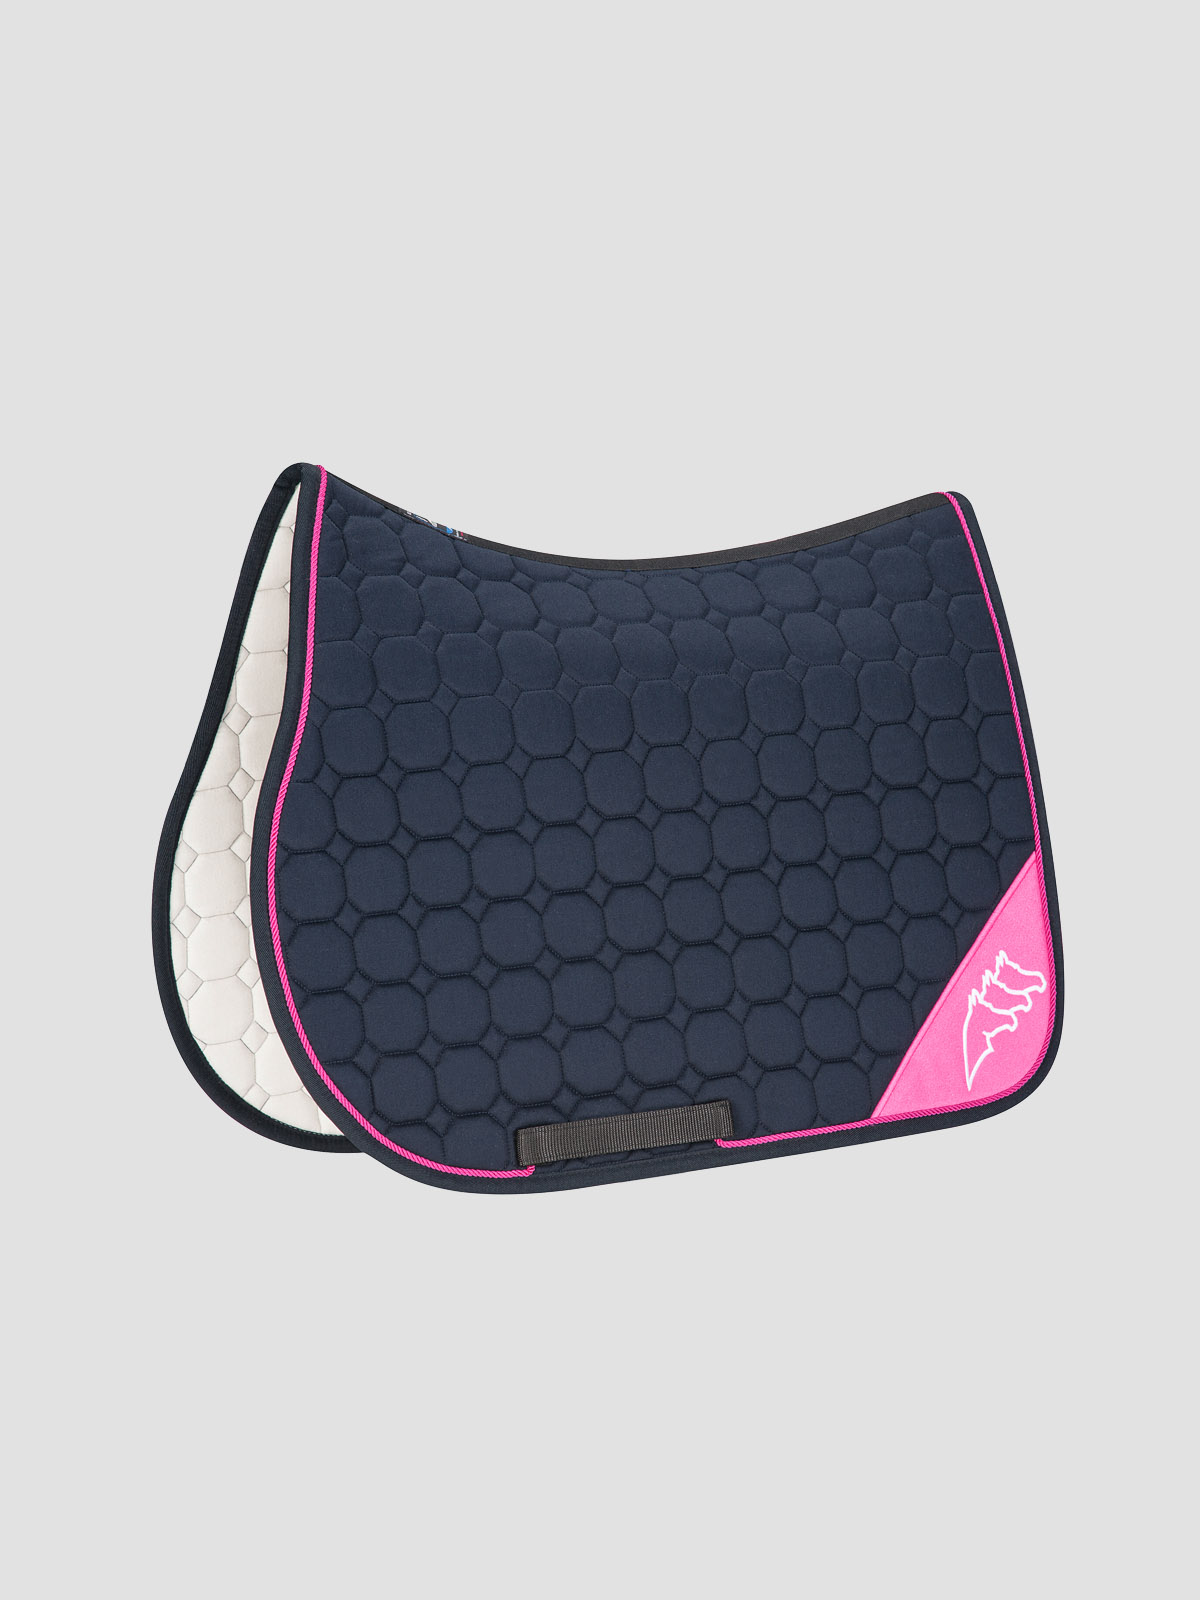 NADIR - Octagon Saddle Pad with Contrast Equiline Logo 7